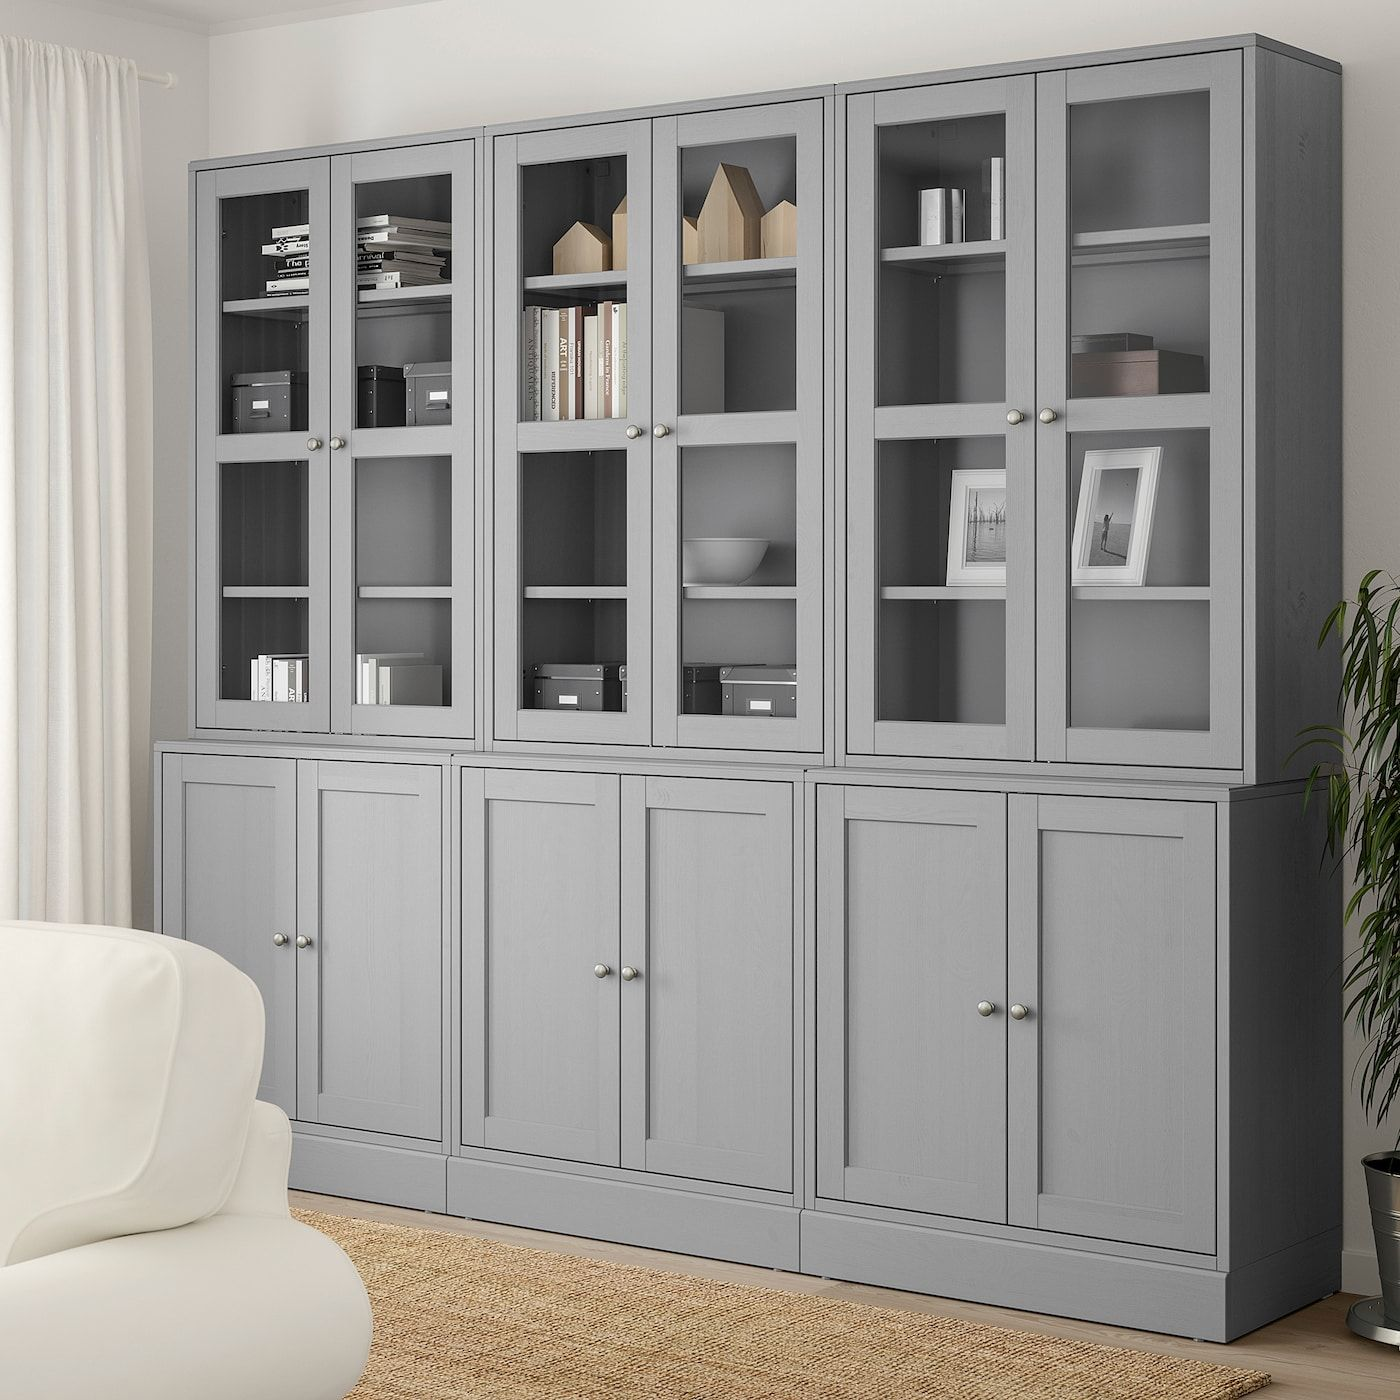 Havsta Storage Combination W Glass Doors Gray Ikea In 2020 Bucherregal Design Wohnzimmerschranke Glasschrankturen